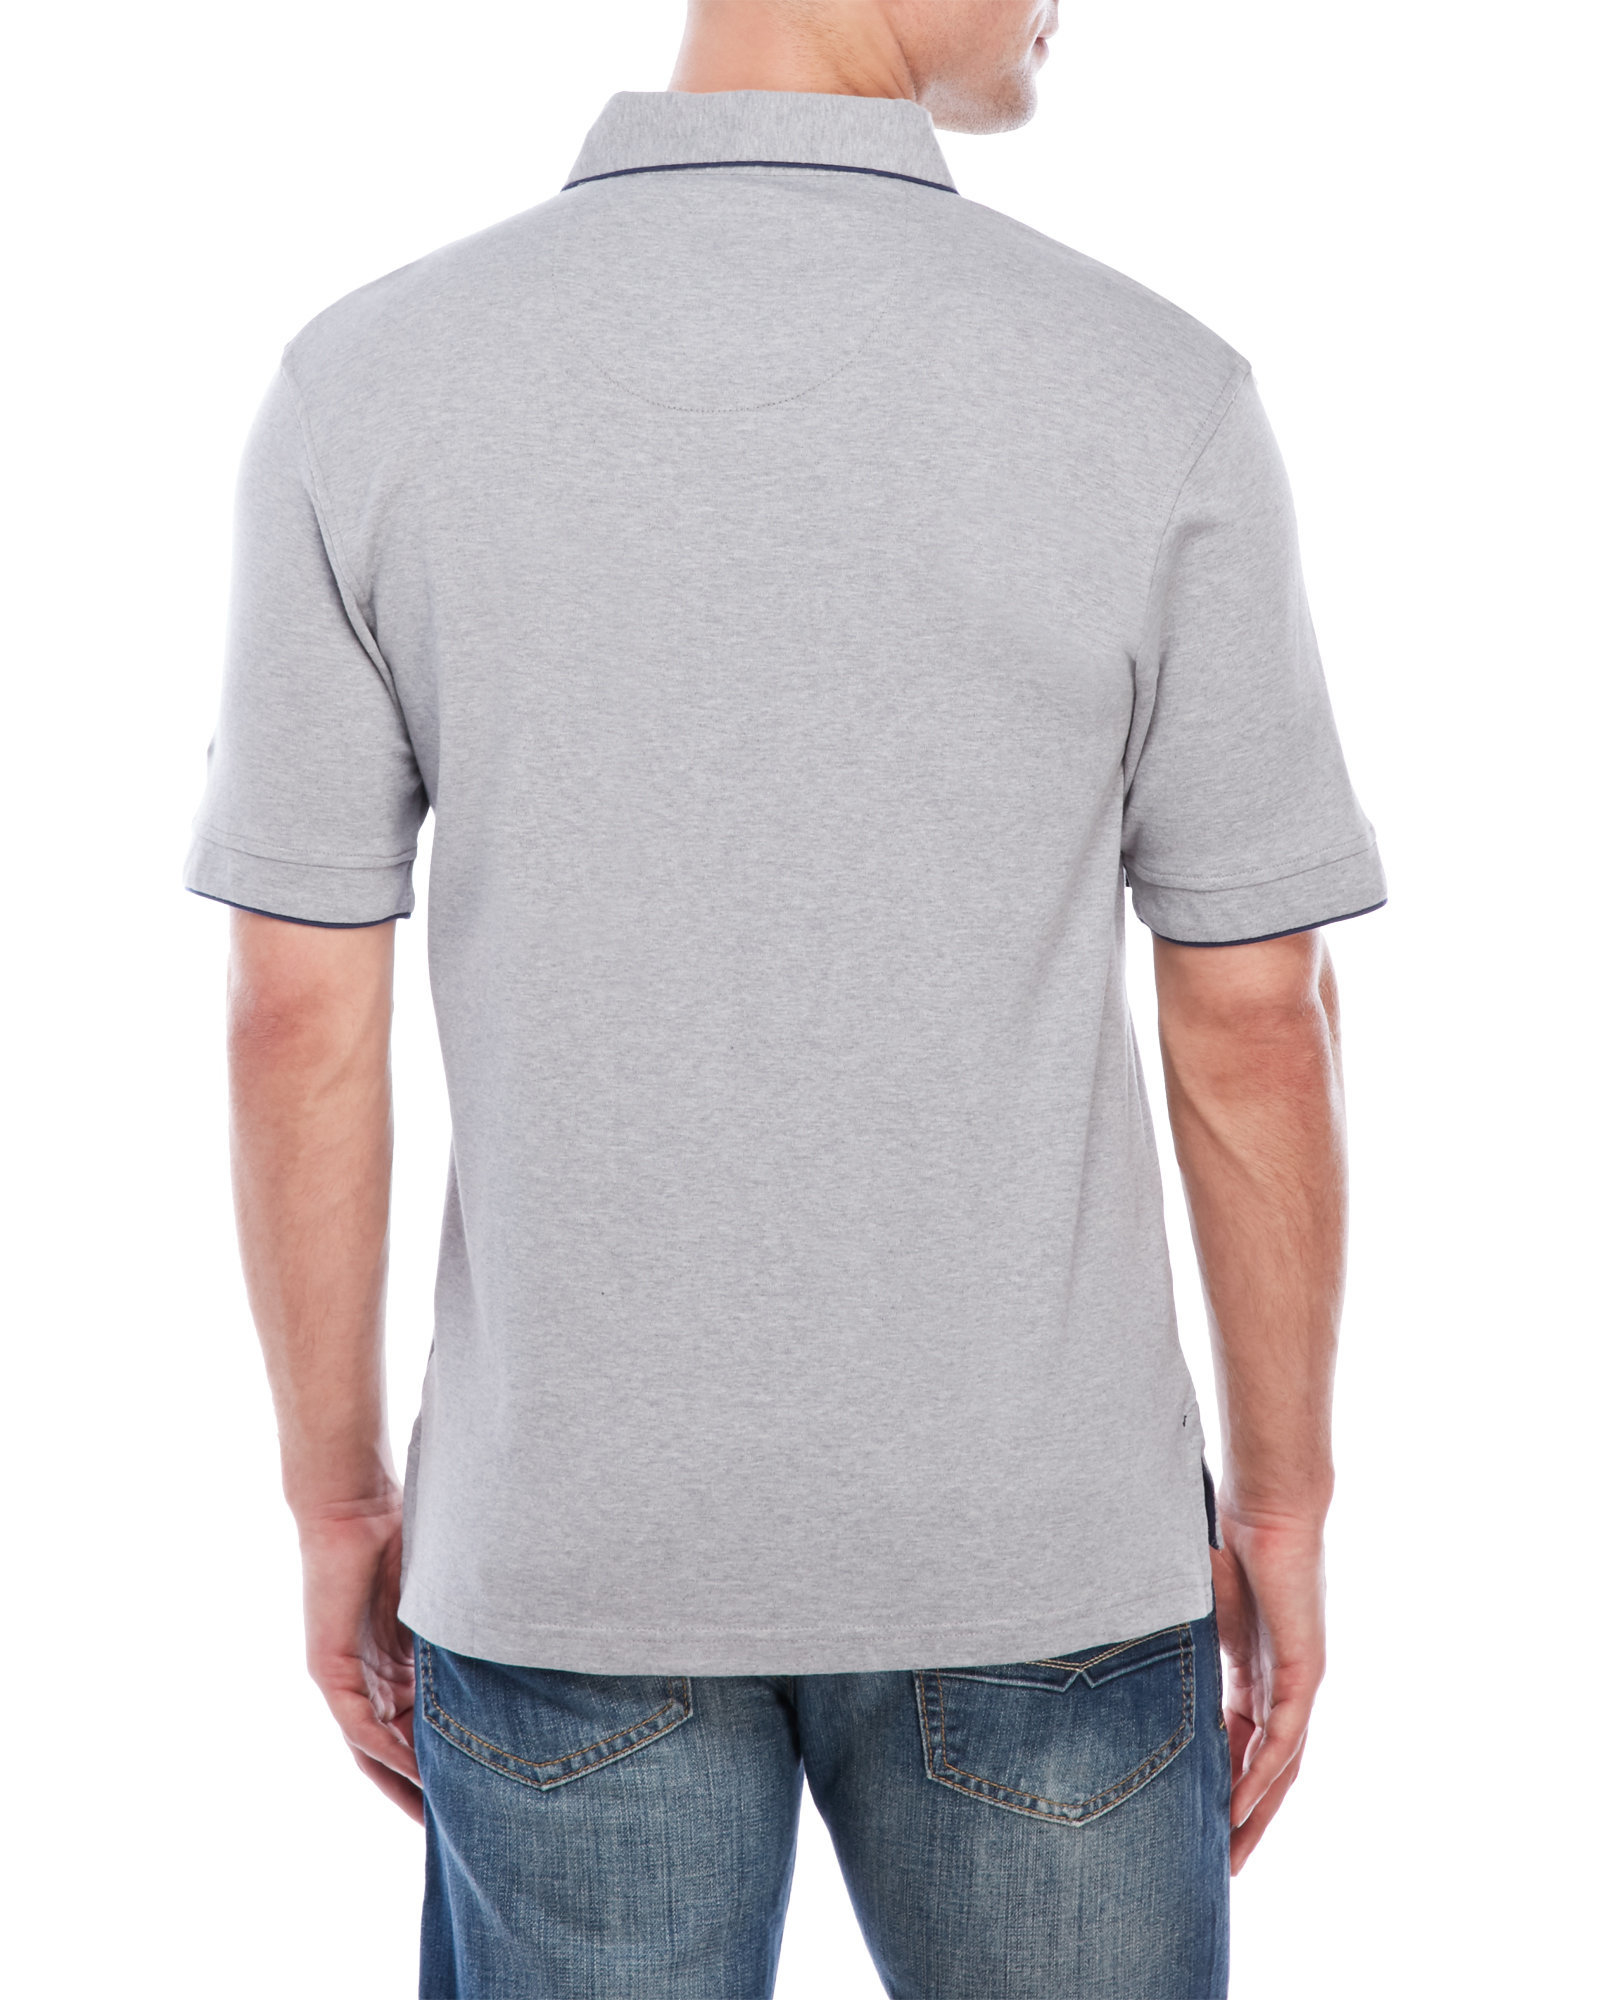 English laundry pima polo shirt in gray for men lyst for Century 21 dress shirts